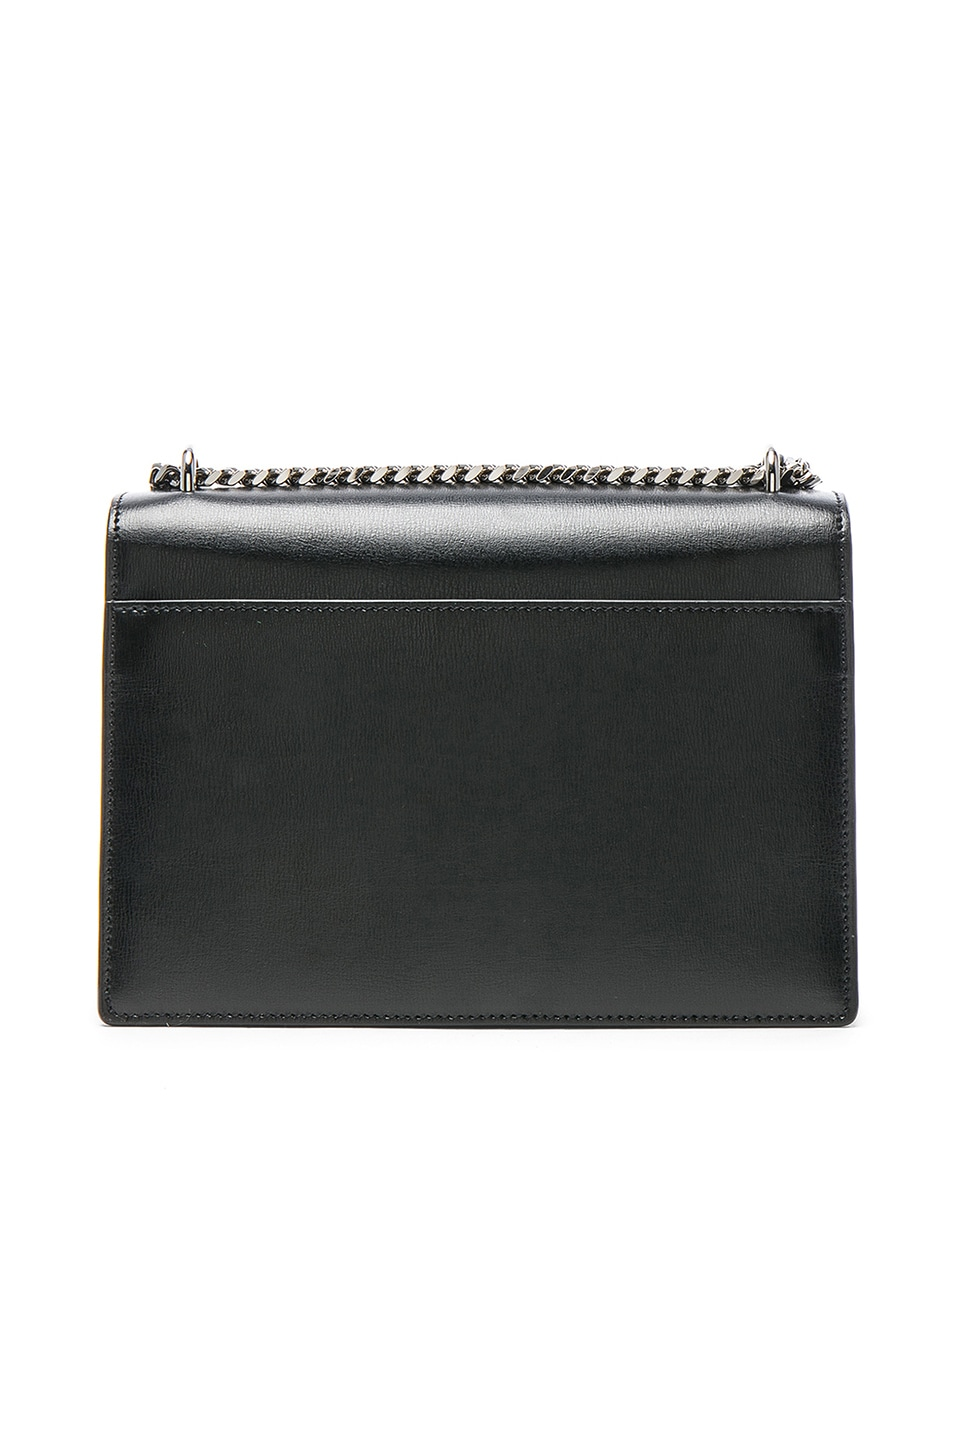 Image 3 of Saint Laurent Medium Monogramme Sunset Chain Bag in Black